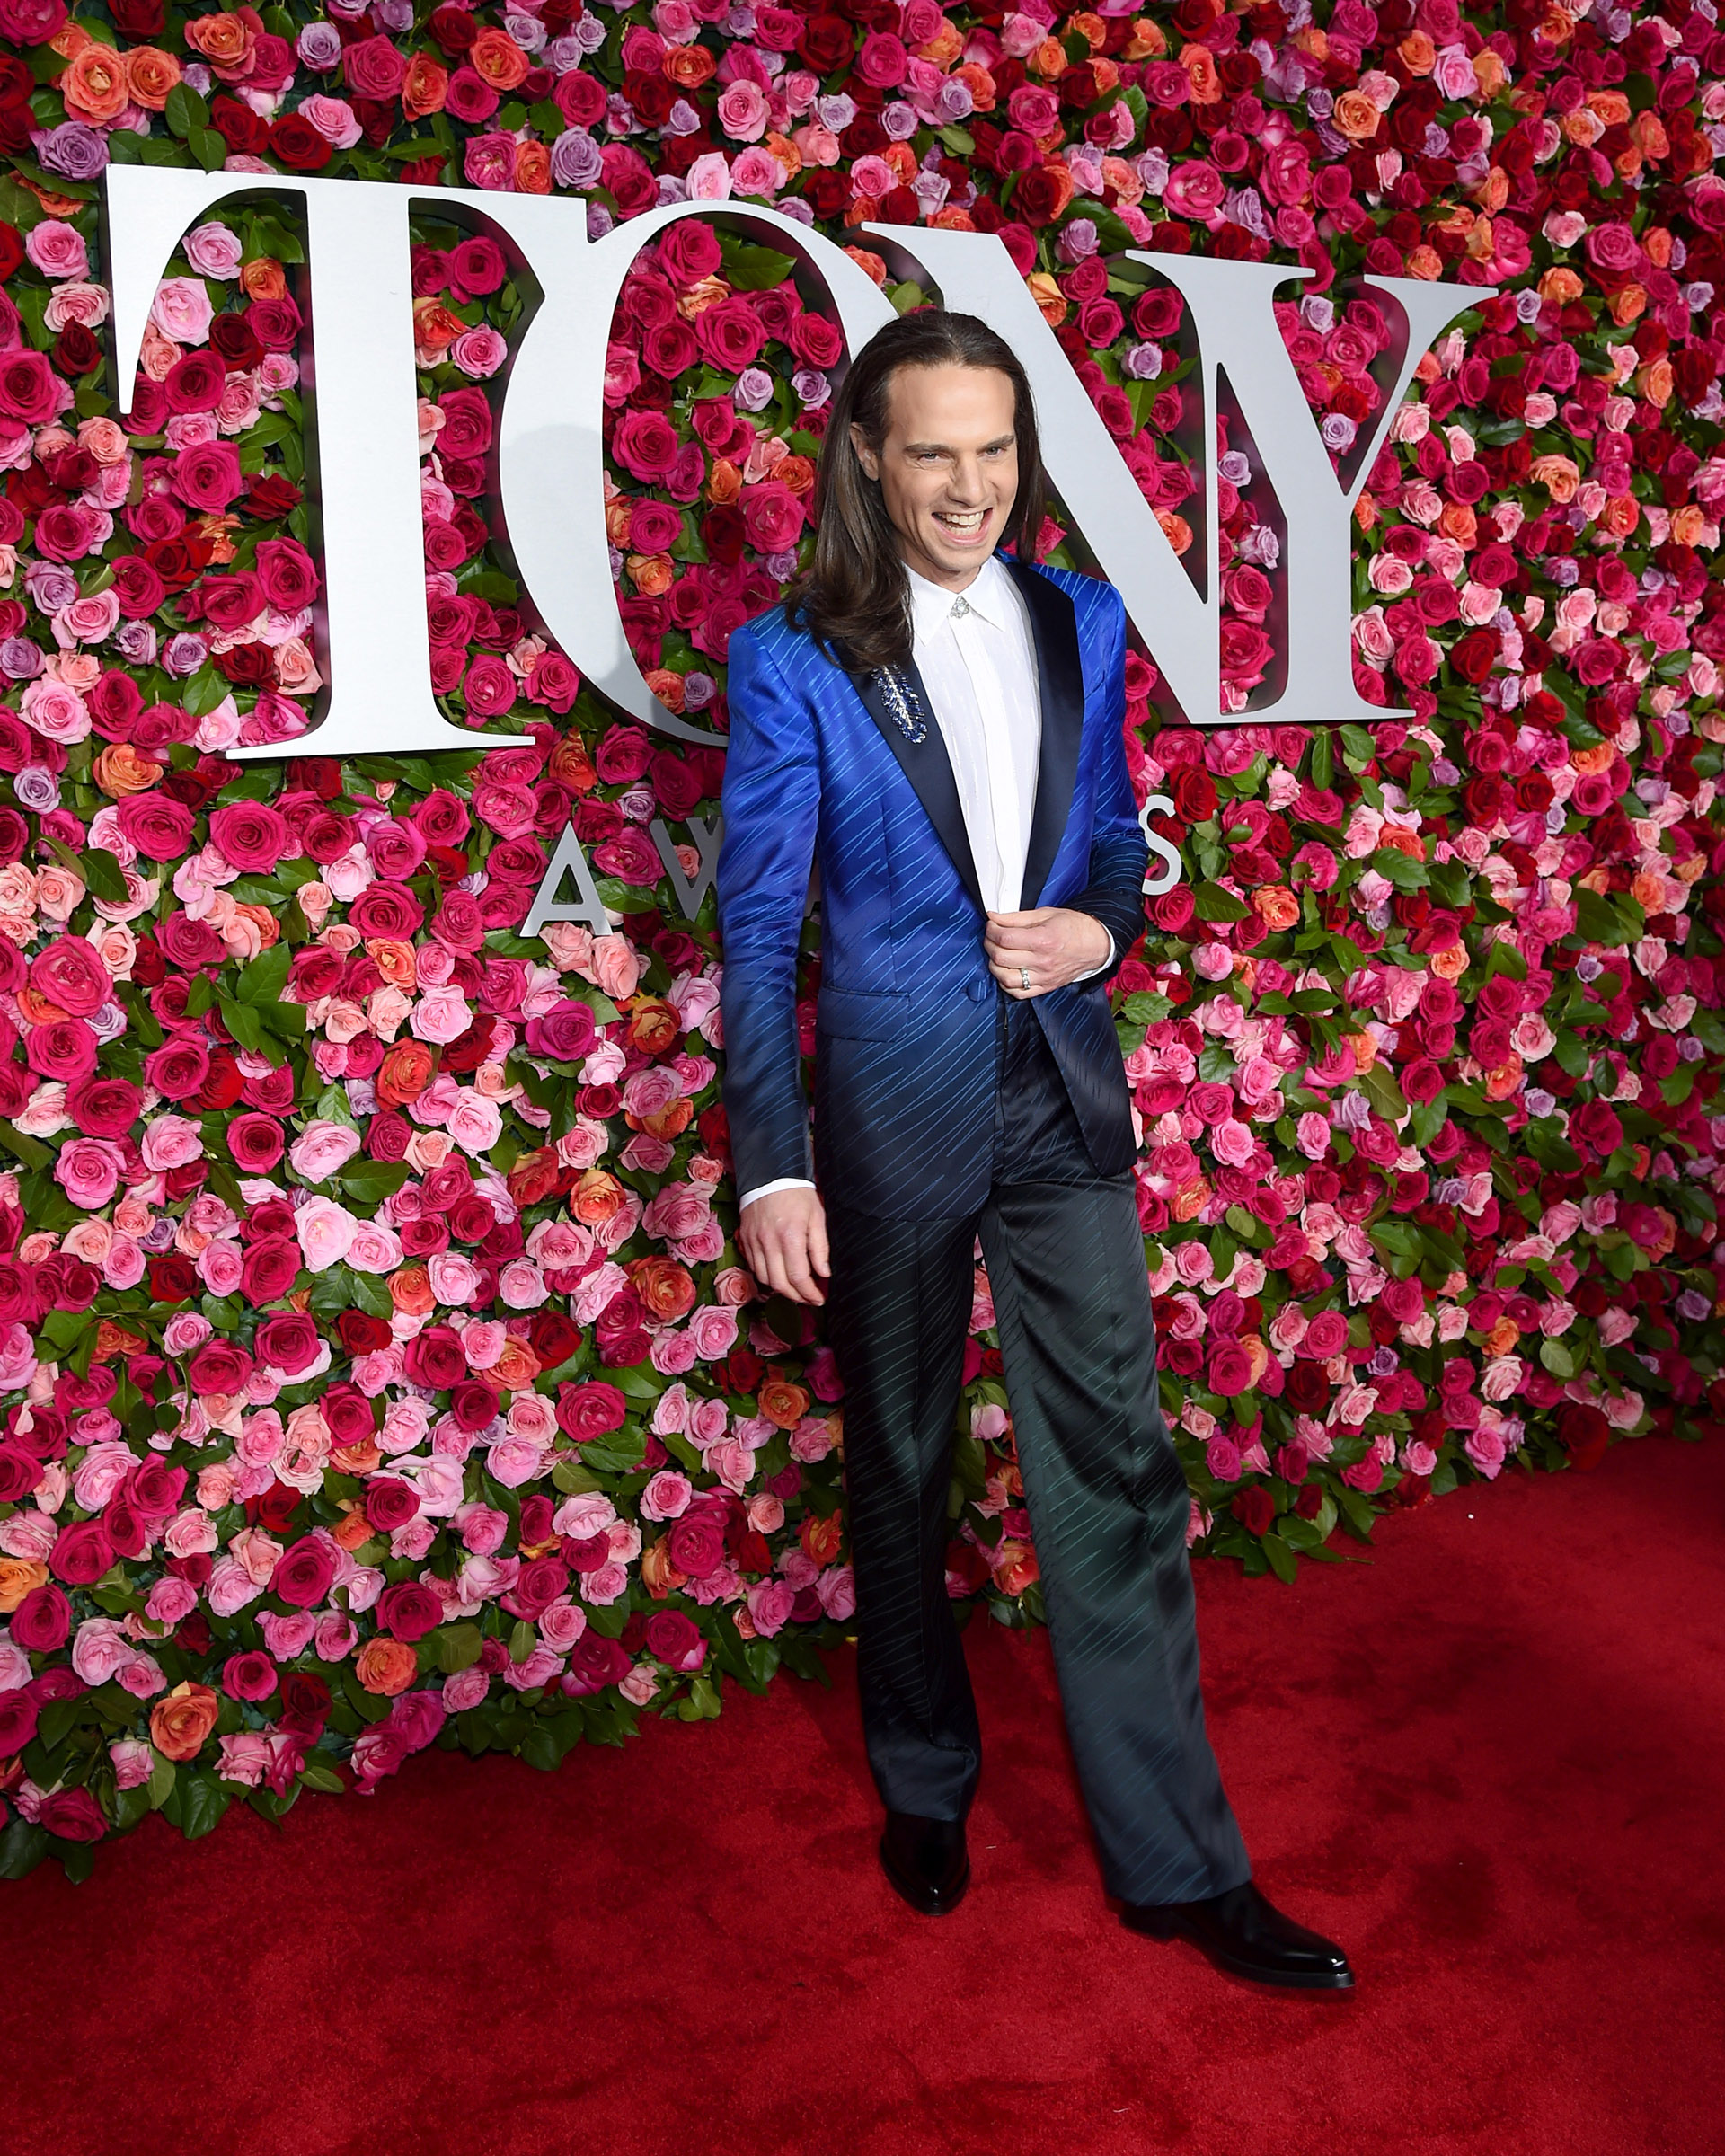 Jordan Roth (Larry Busacca/Getty Images for Tony Awards Productions /AFP)